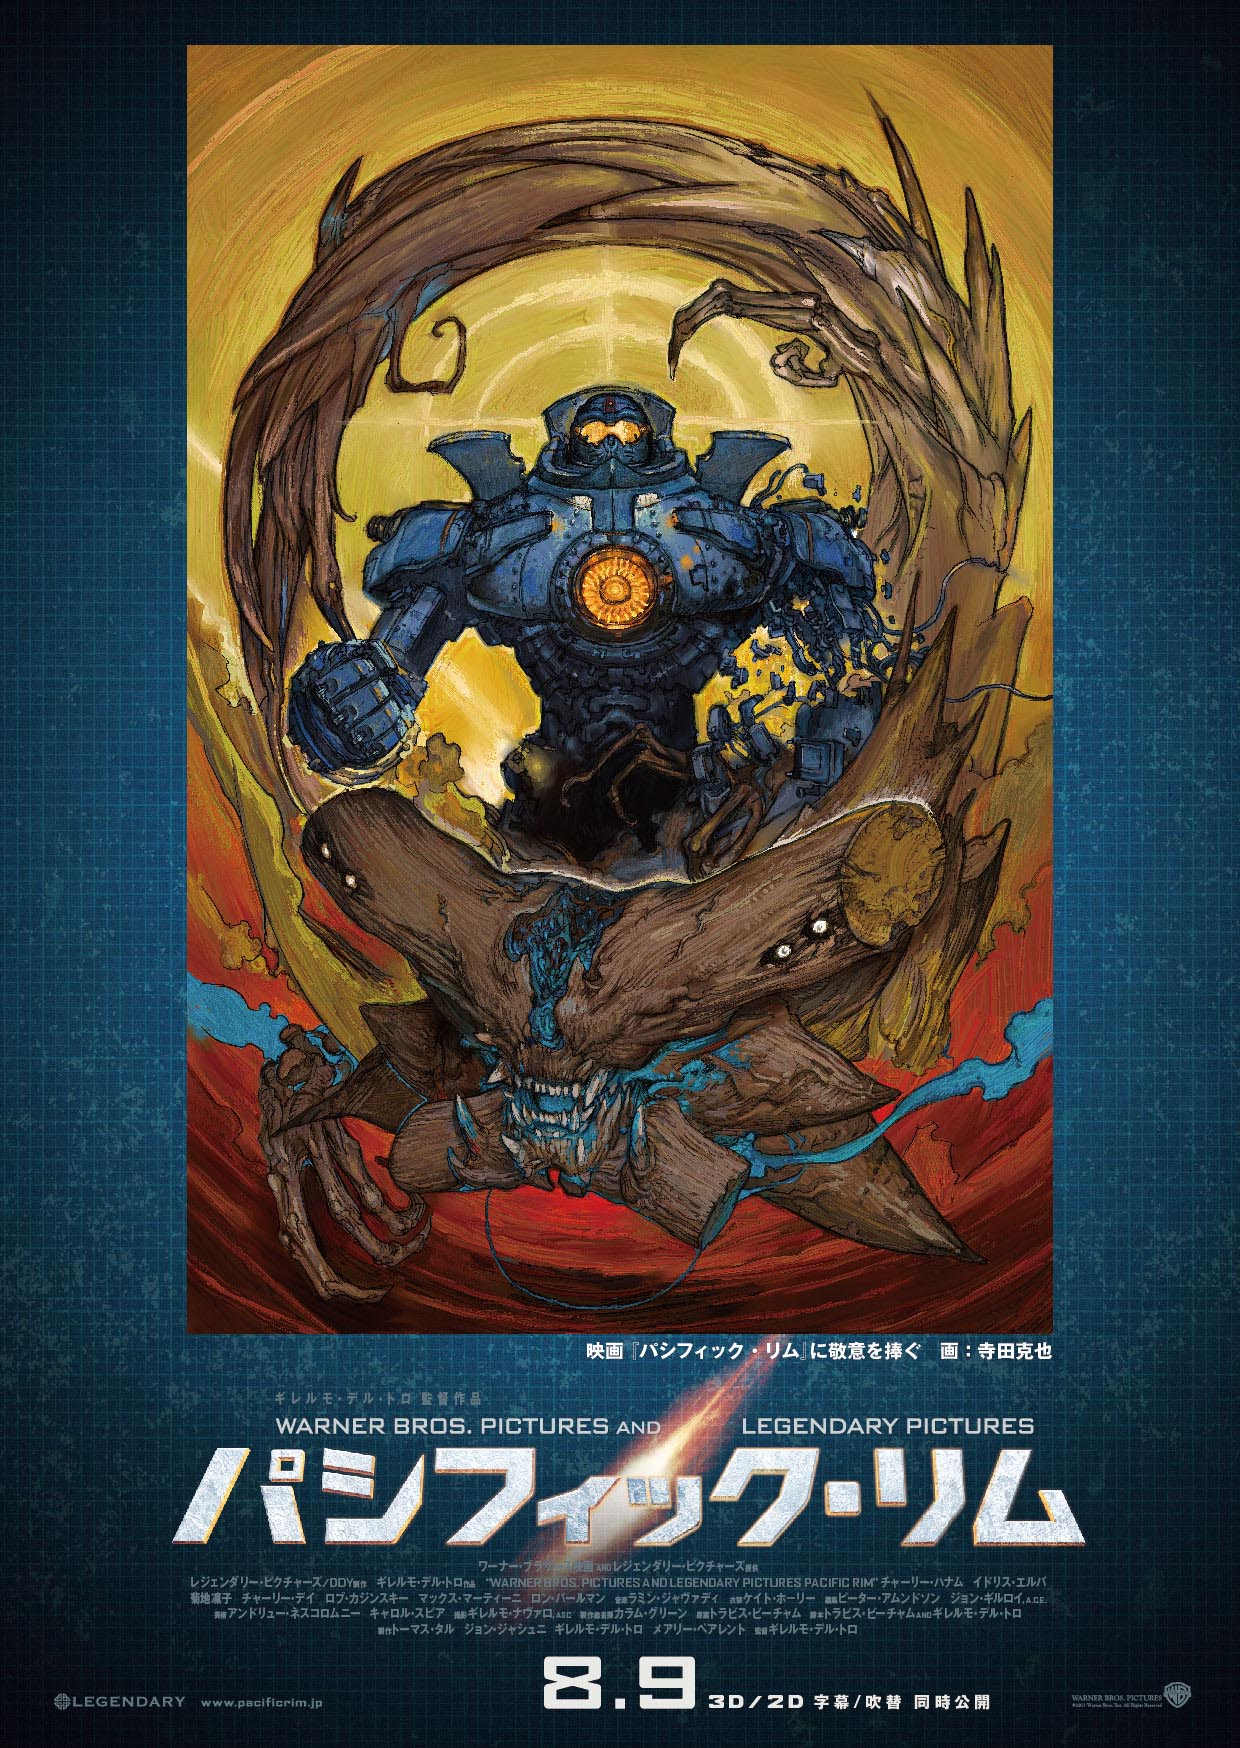 Pacific-Rim-Banner-Poster-Official-PROMO-POSTER-JAPAN_TERADA-12AGOSTO2013